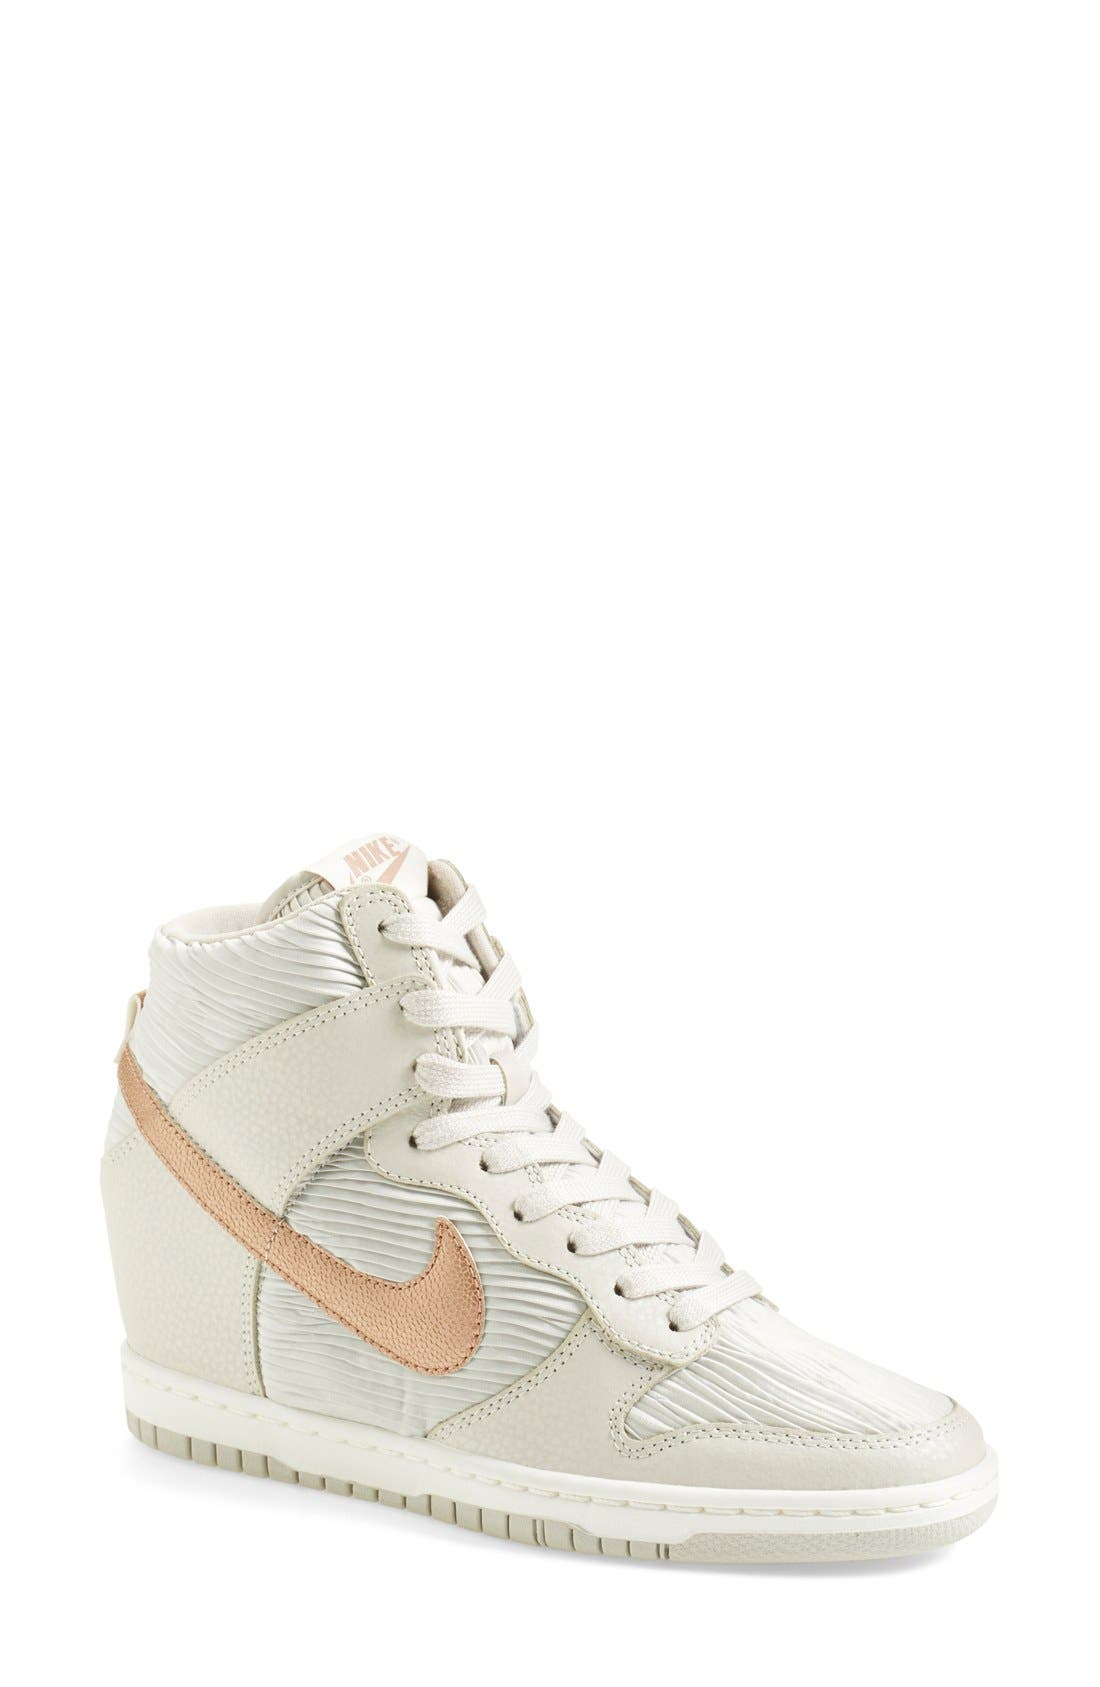 official photos 0a7e8 f400b nike sky high wedge sneakers australia